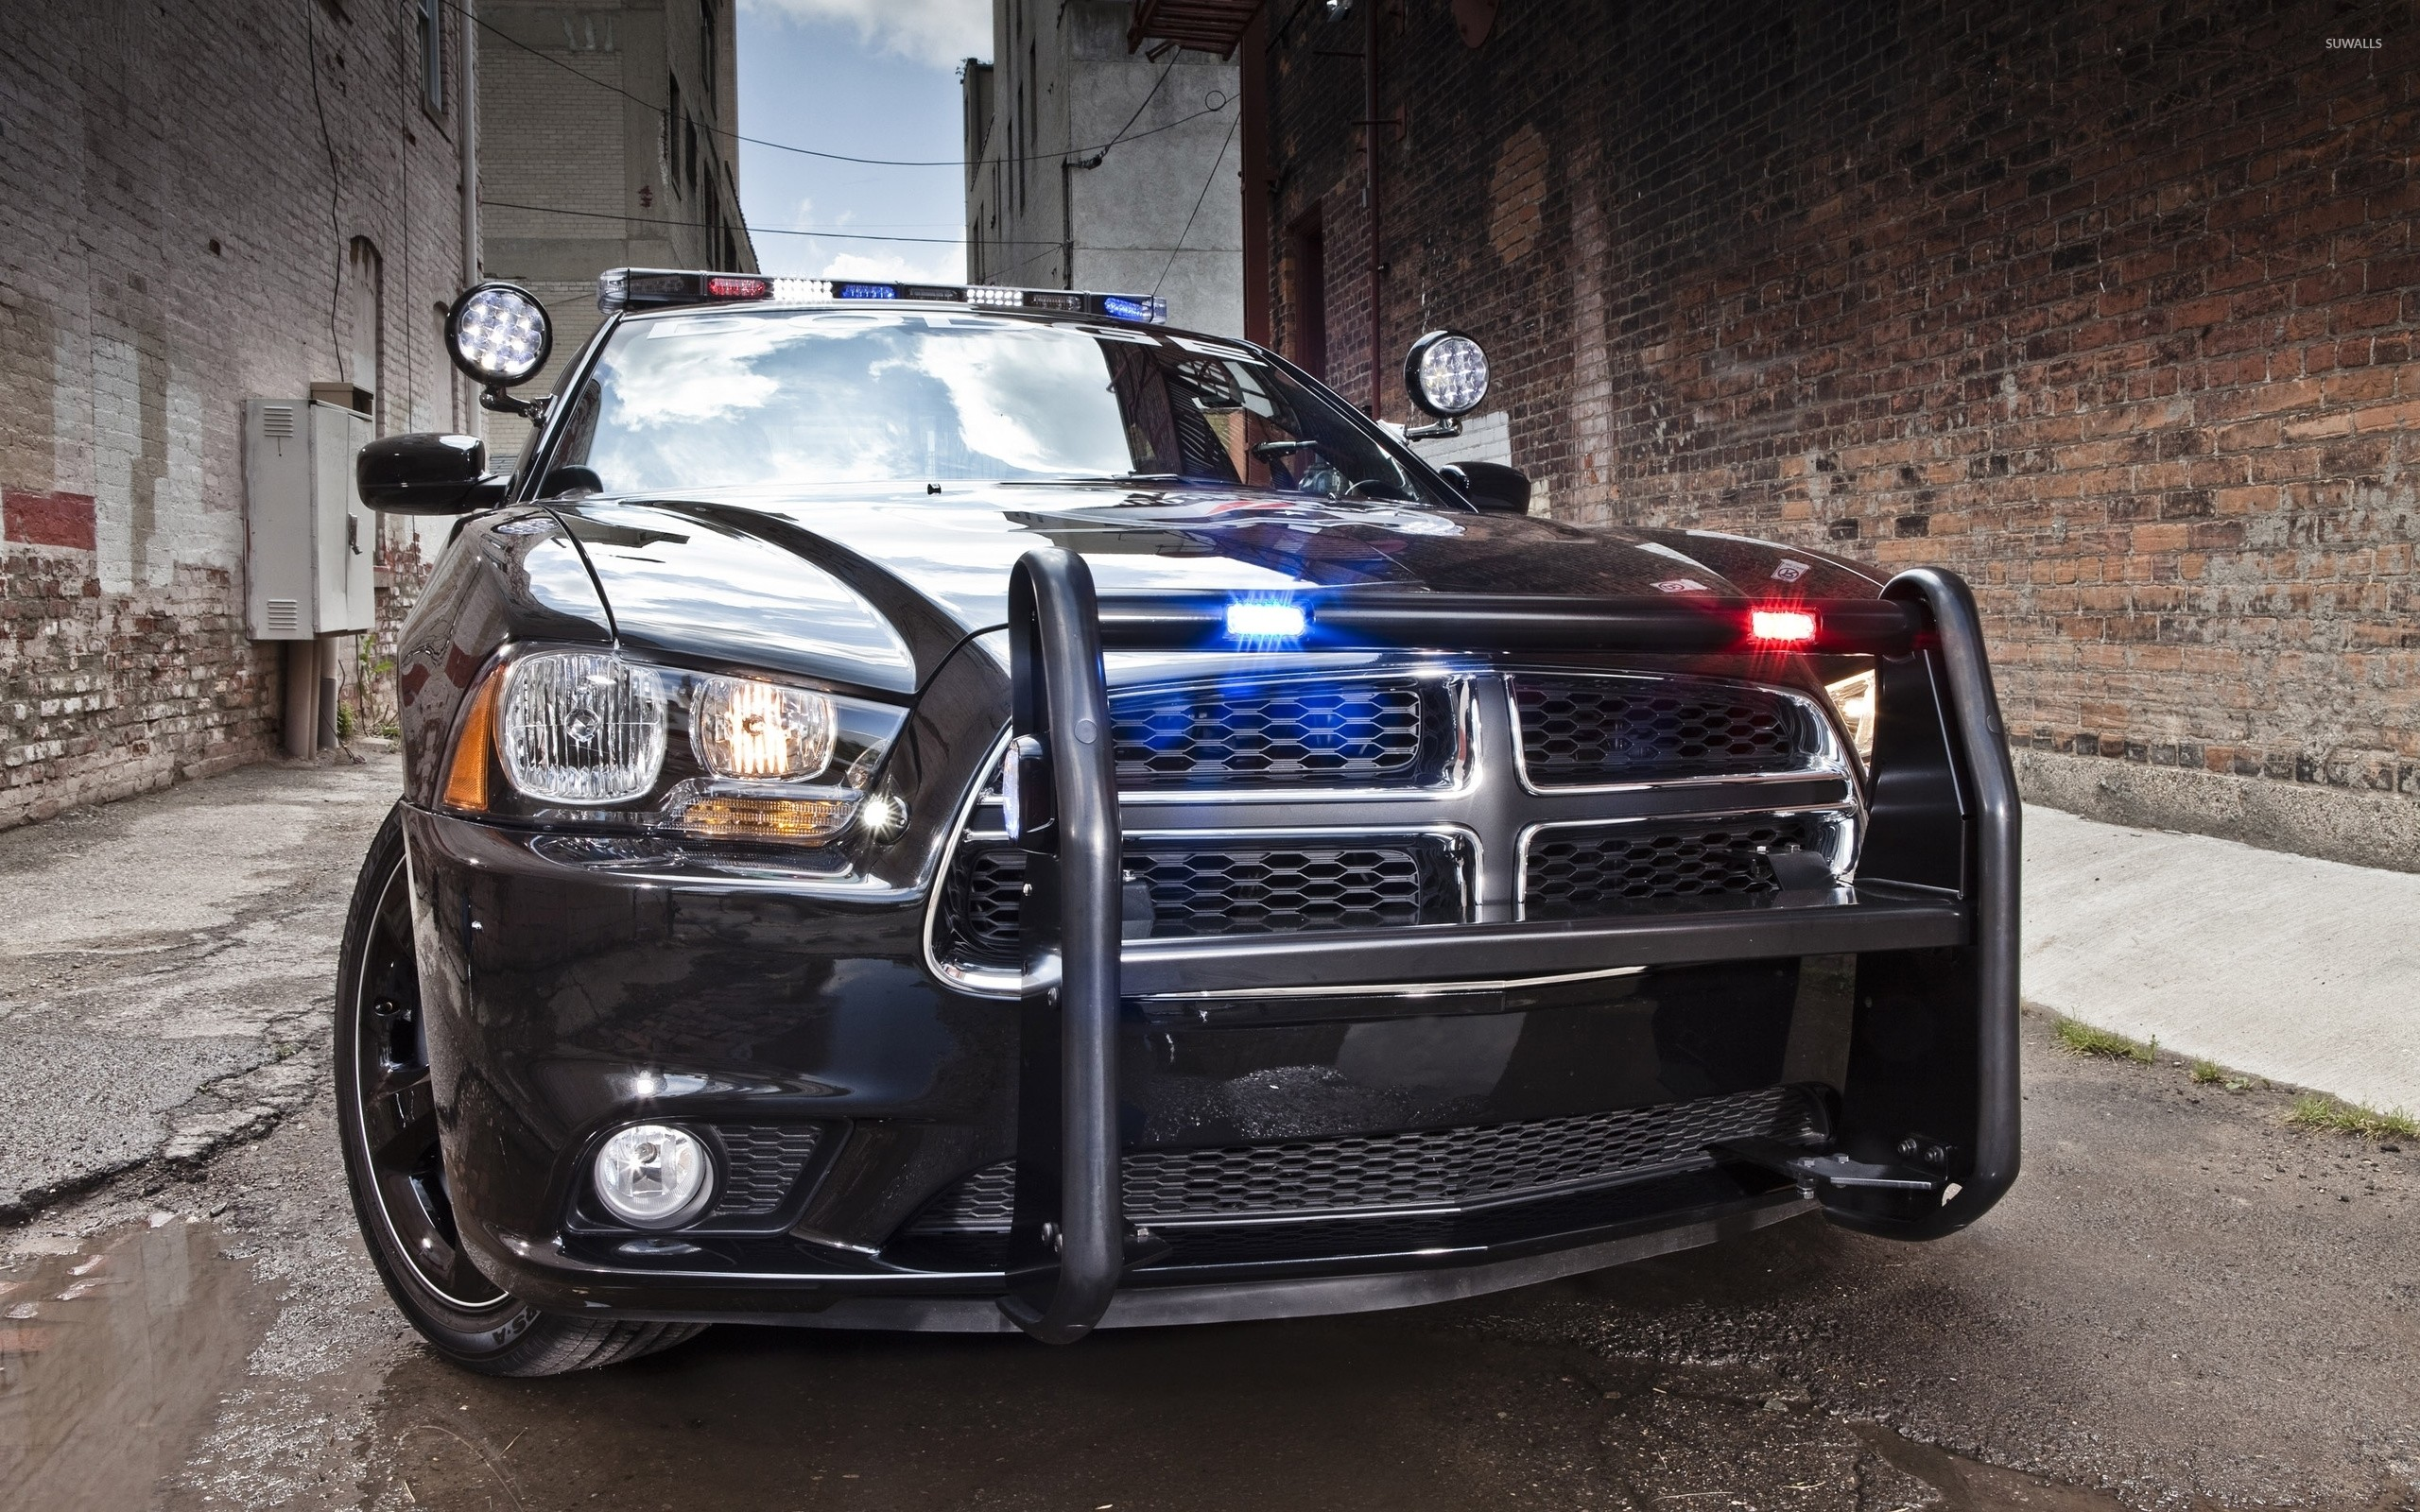 Res: 2560x1600, Dodge Charger police car [2] wallpaper